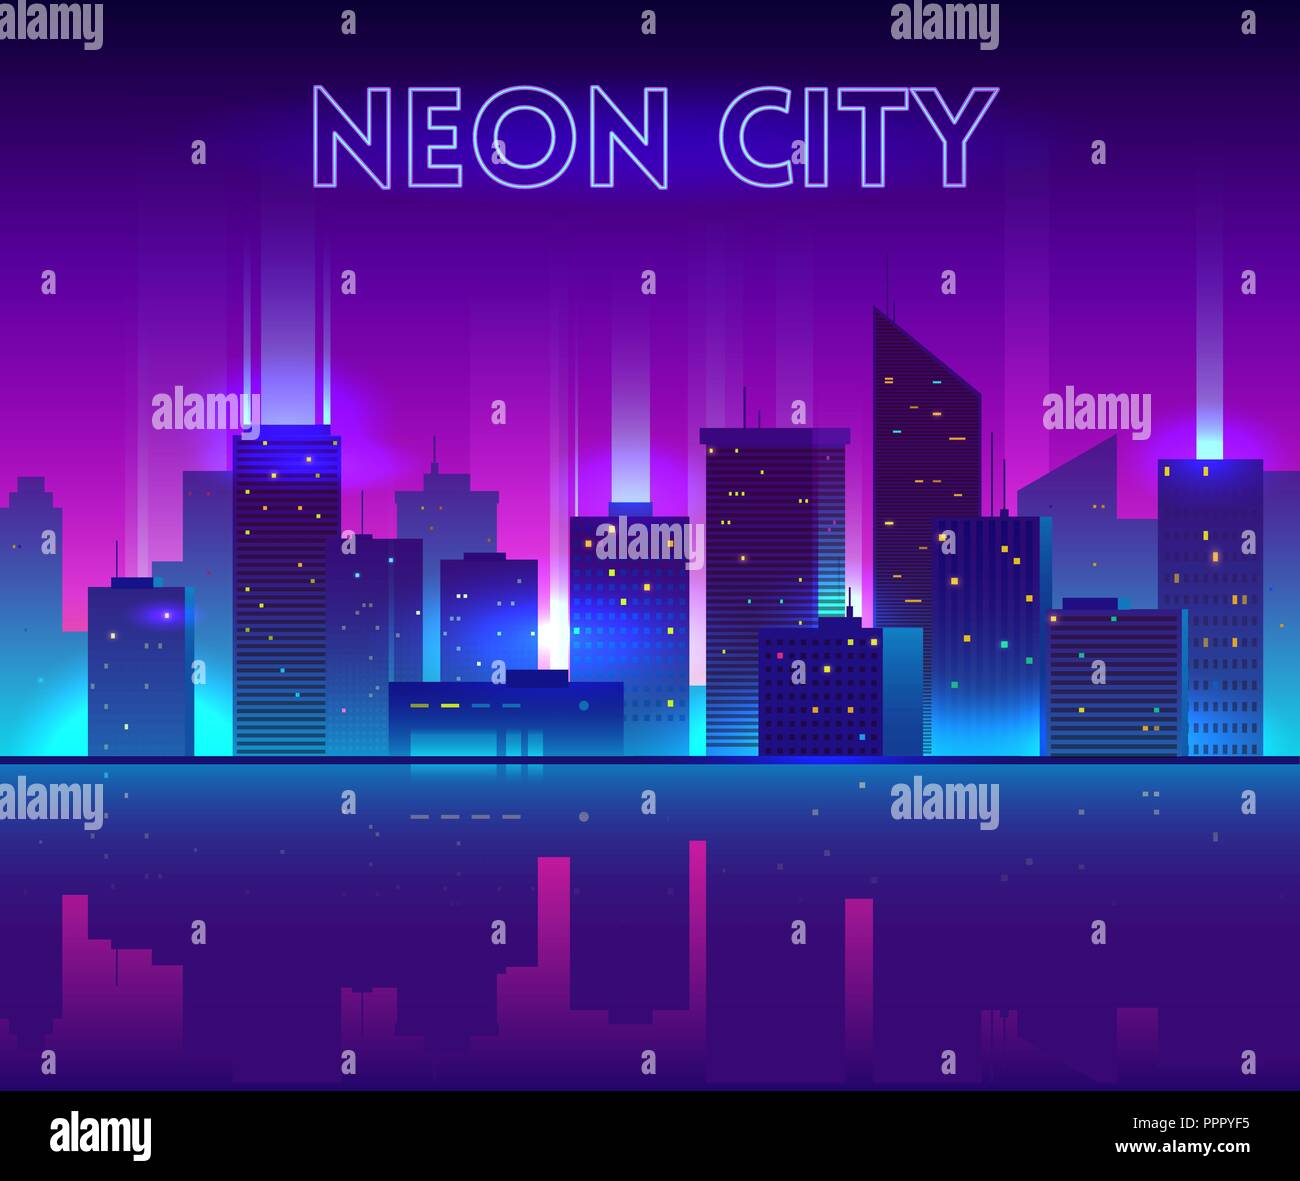 Vector night city illustration with neon glow, vivid colors and reflection - Stock Vector